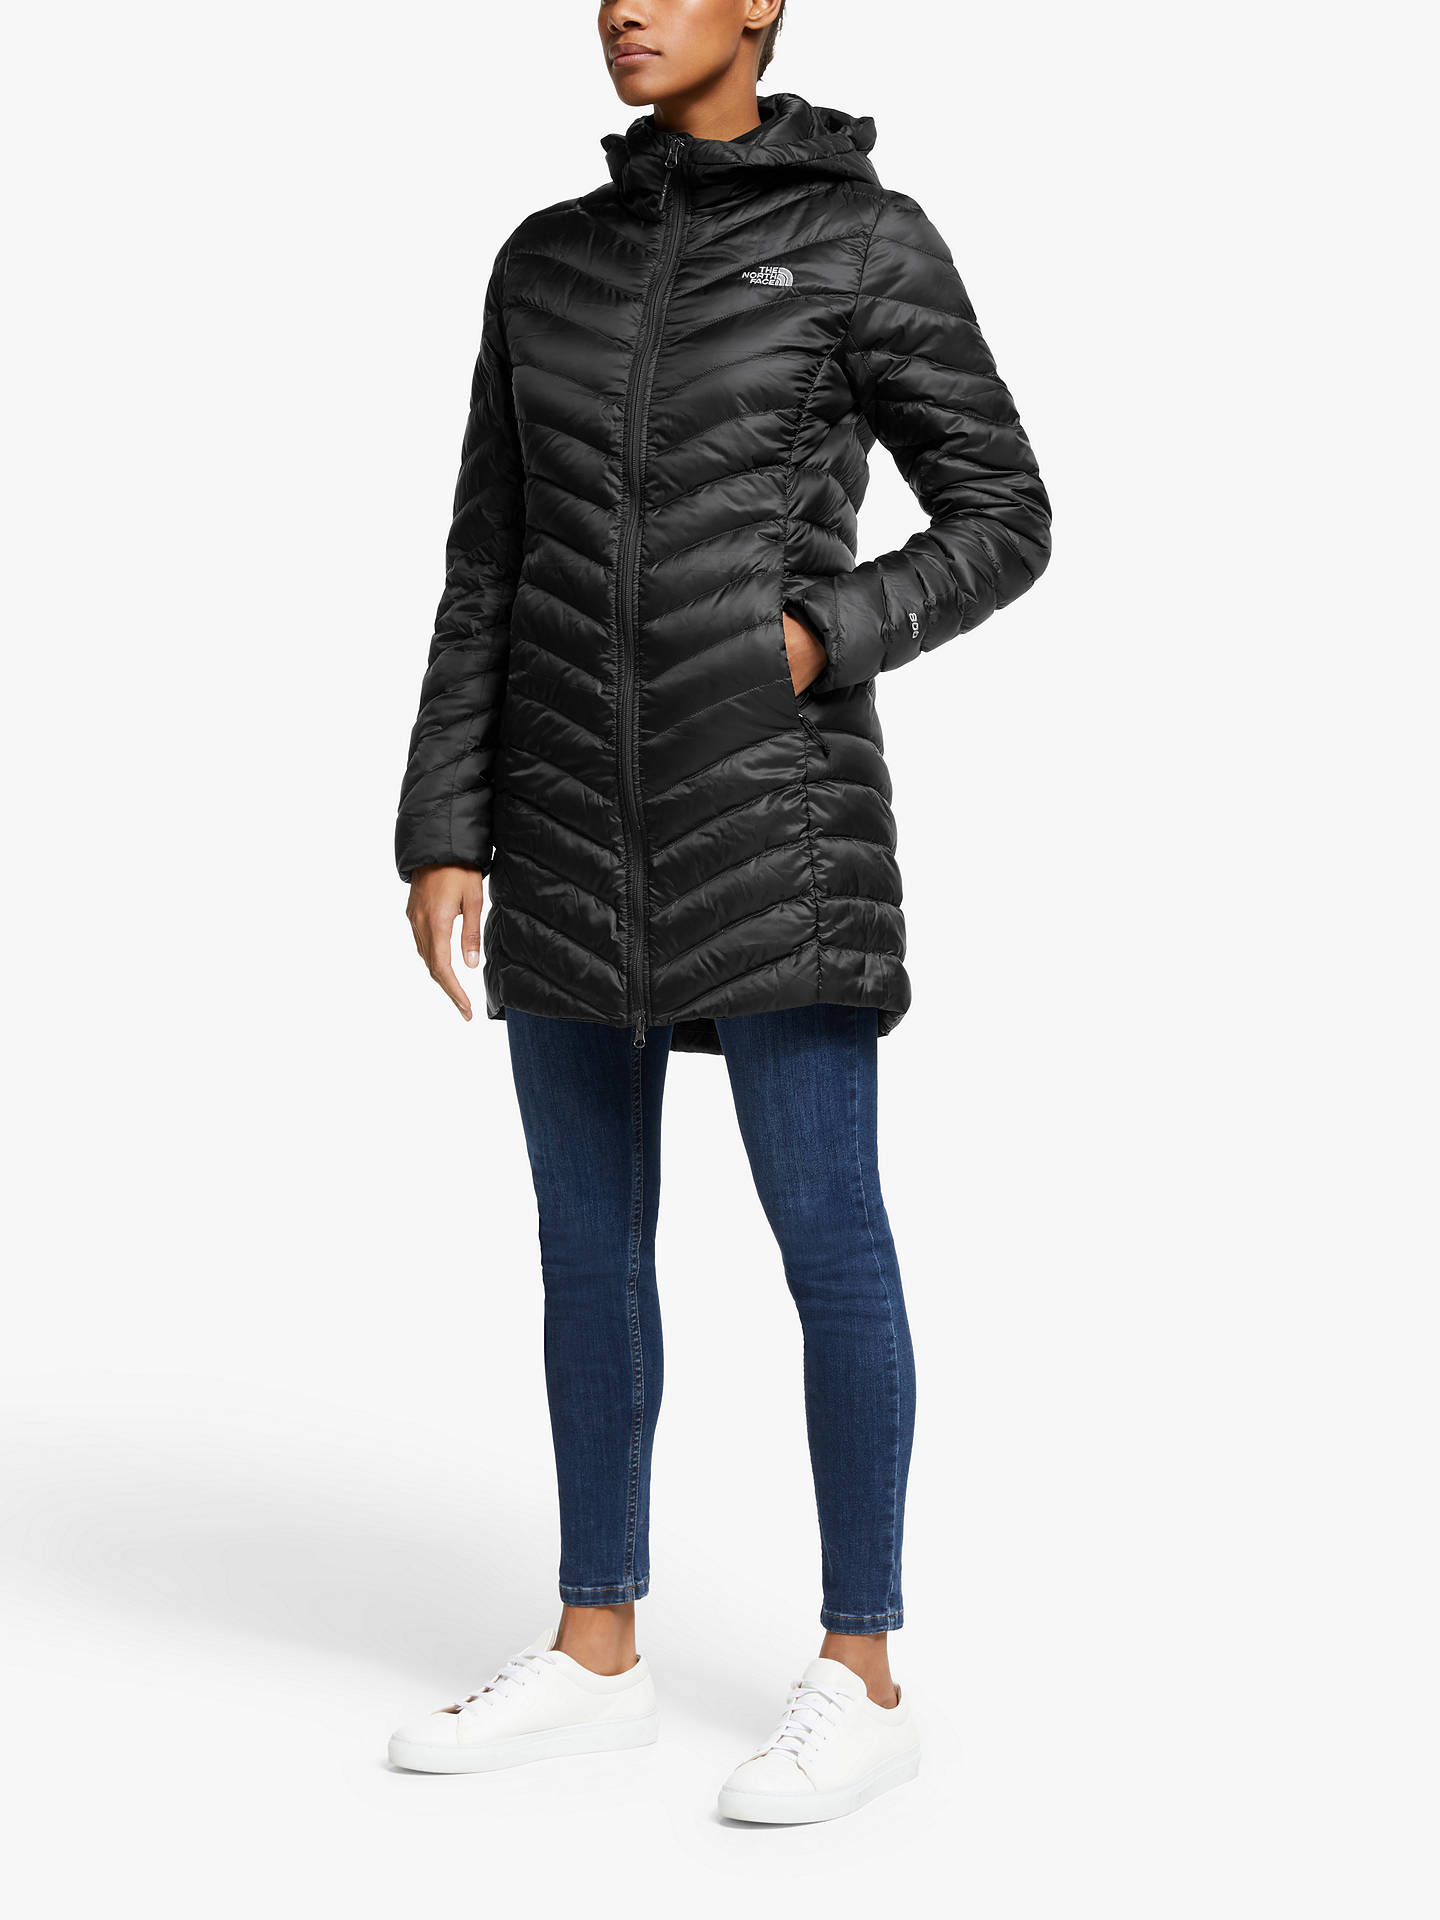 41b50609d967 Buy The North Face Trevail Insulated Women s Parka